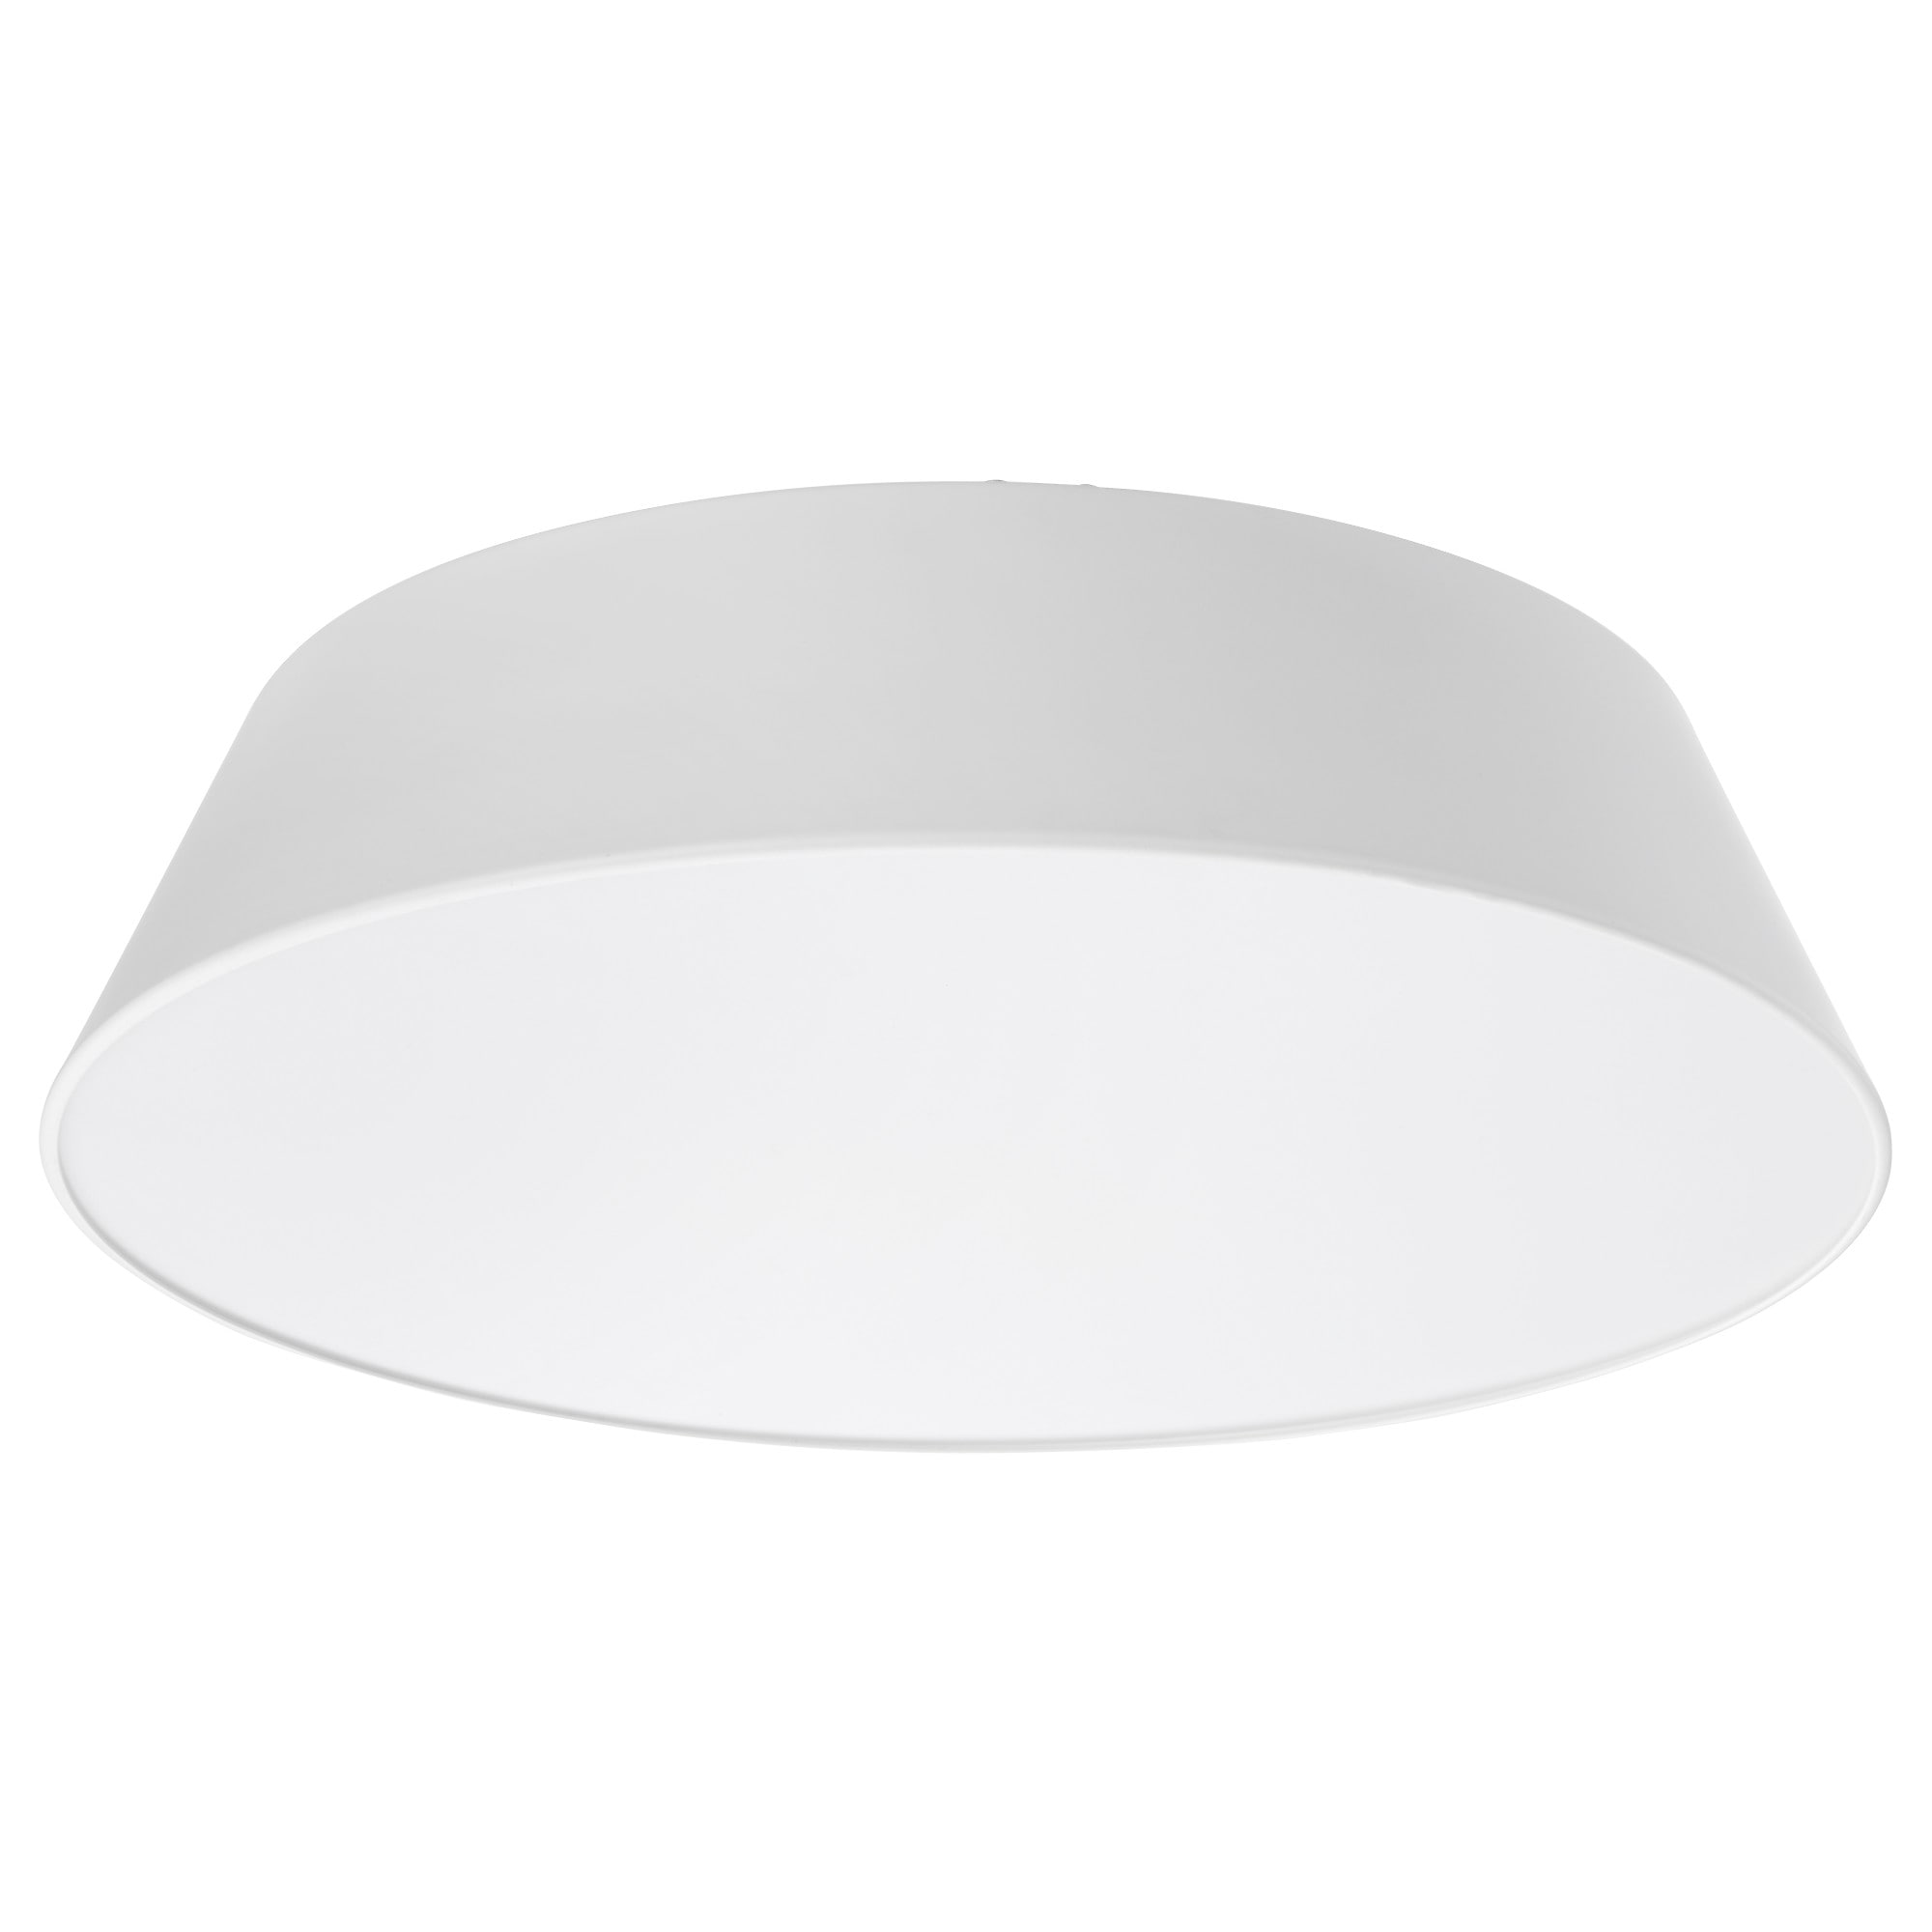 Ceiling lights lamps ikea fubbla ceiling lamp white arubaitofo Image collections